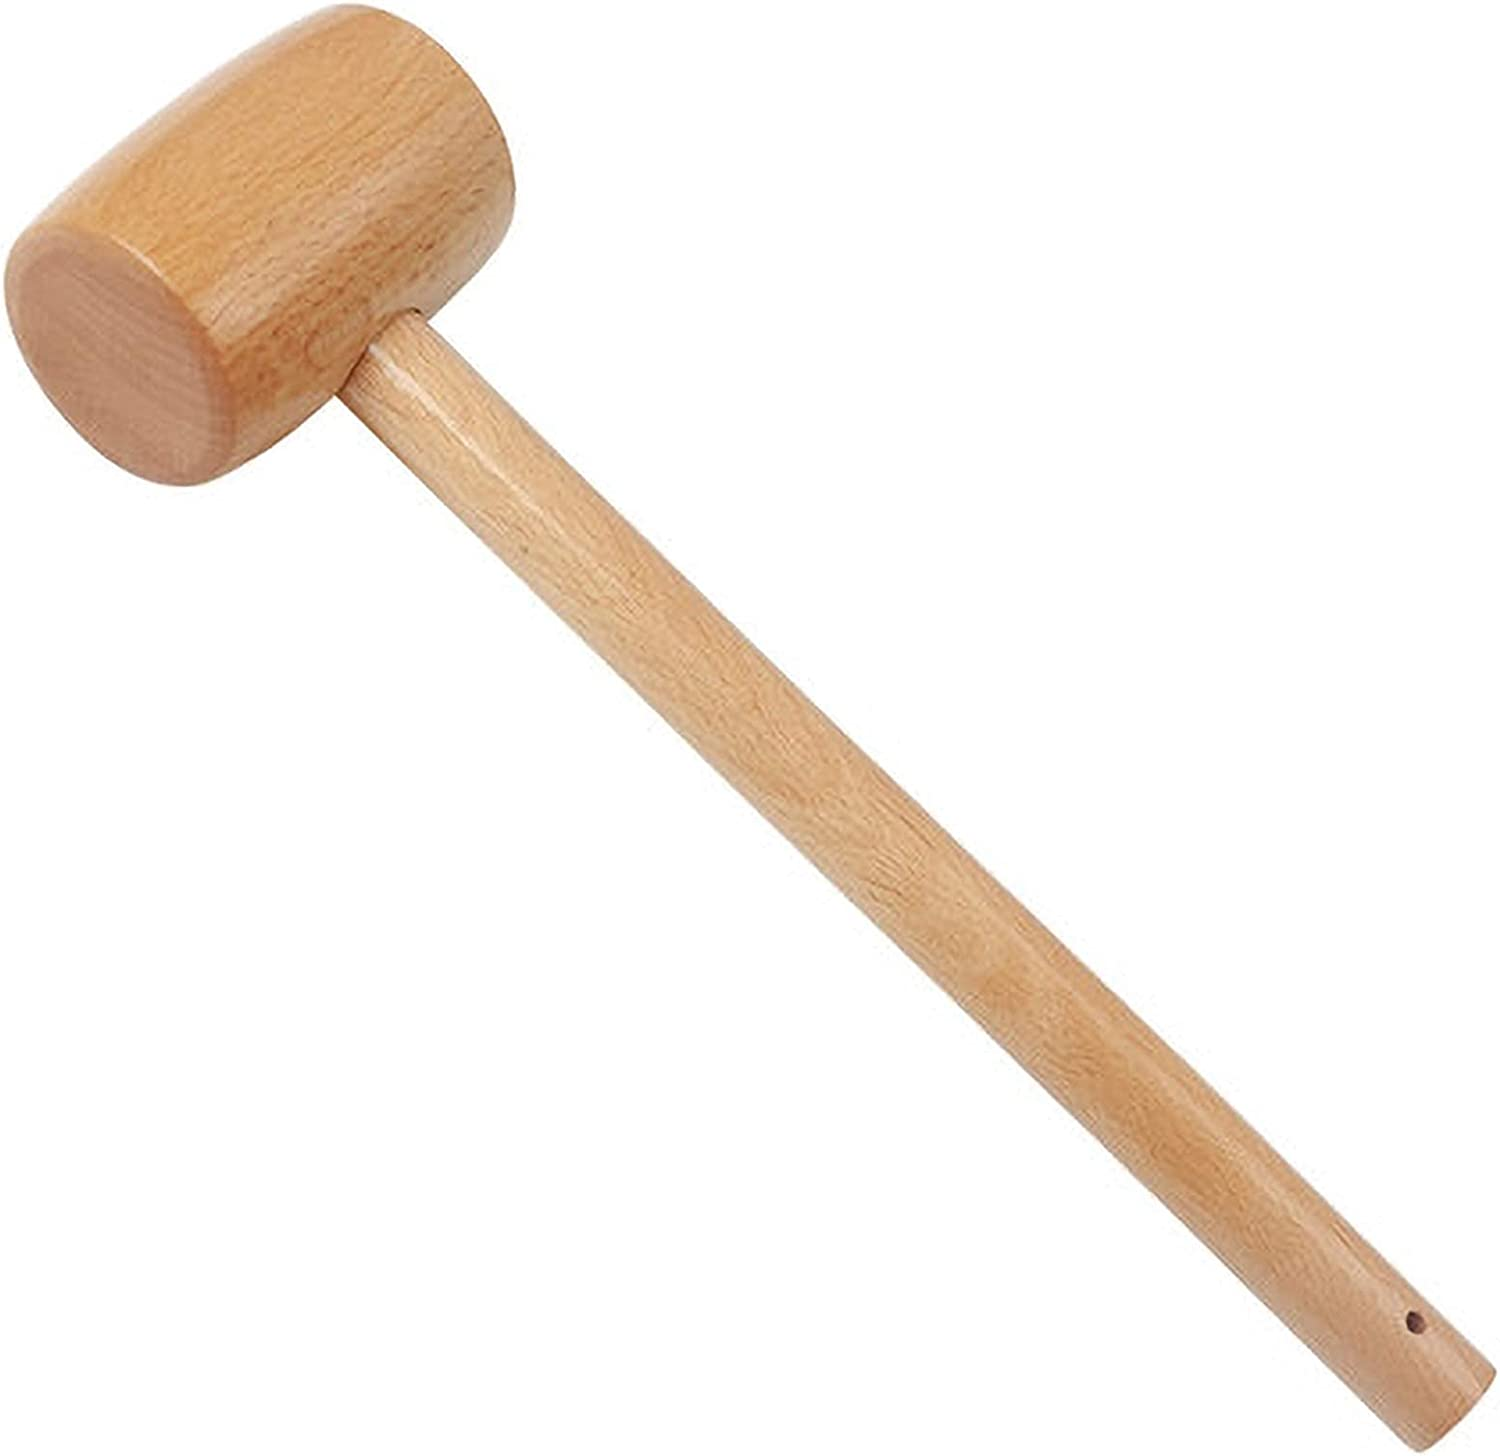 New product!! TYUXINSD Easy to use Hammer Small Arlington Mall Multi-Pur Wooden Mallet